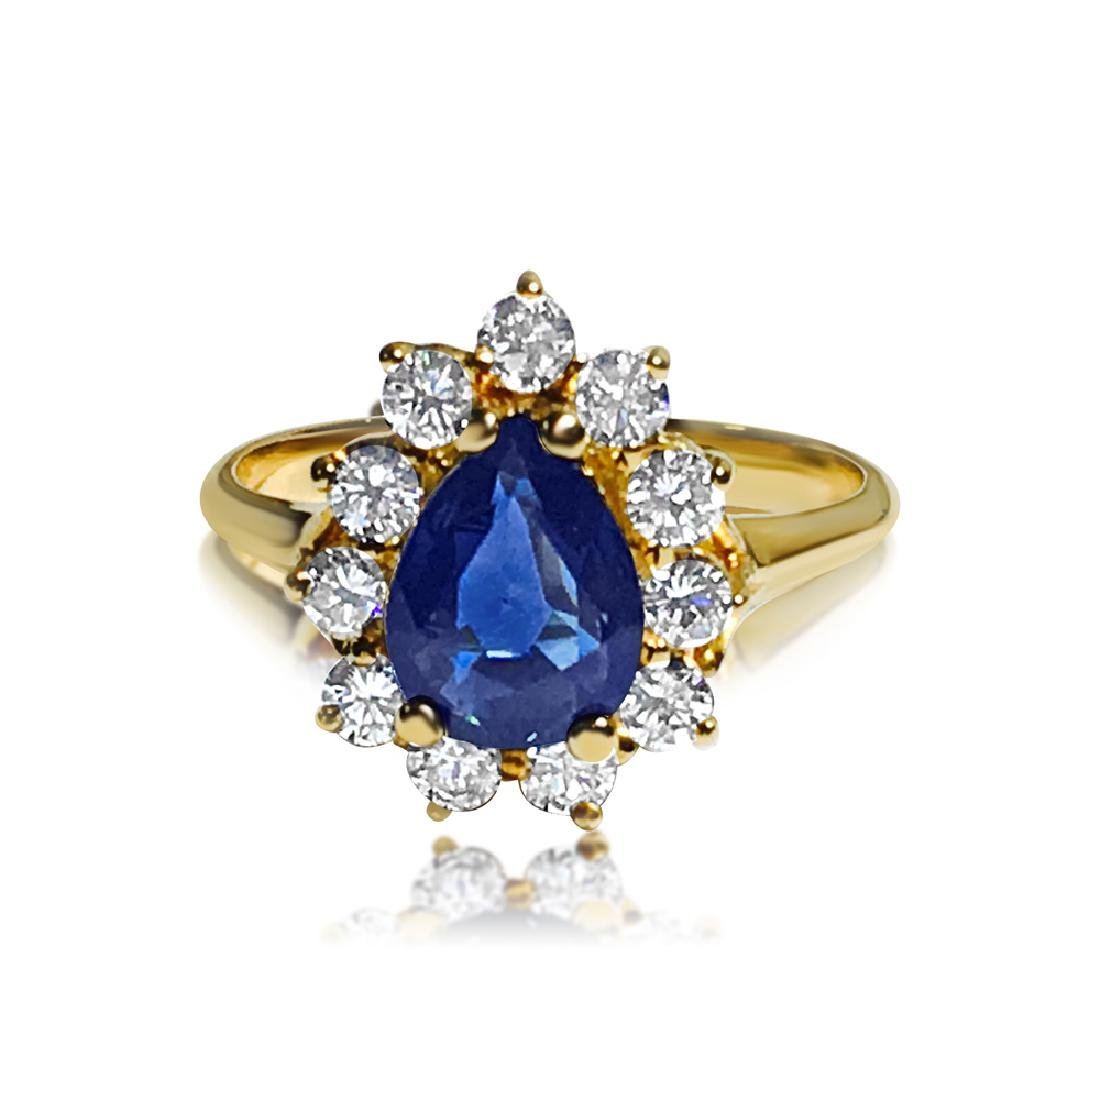 18K Gold, 1.50 Carat Blue Sapphire and Diamond Ring